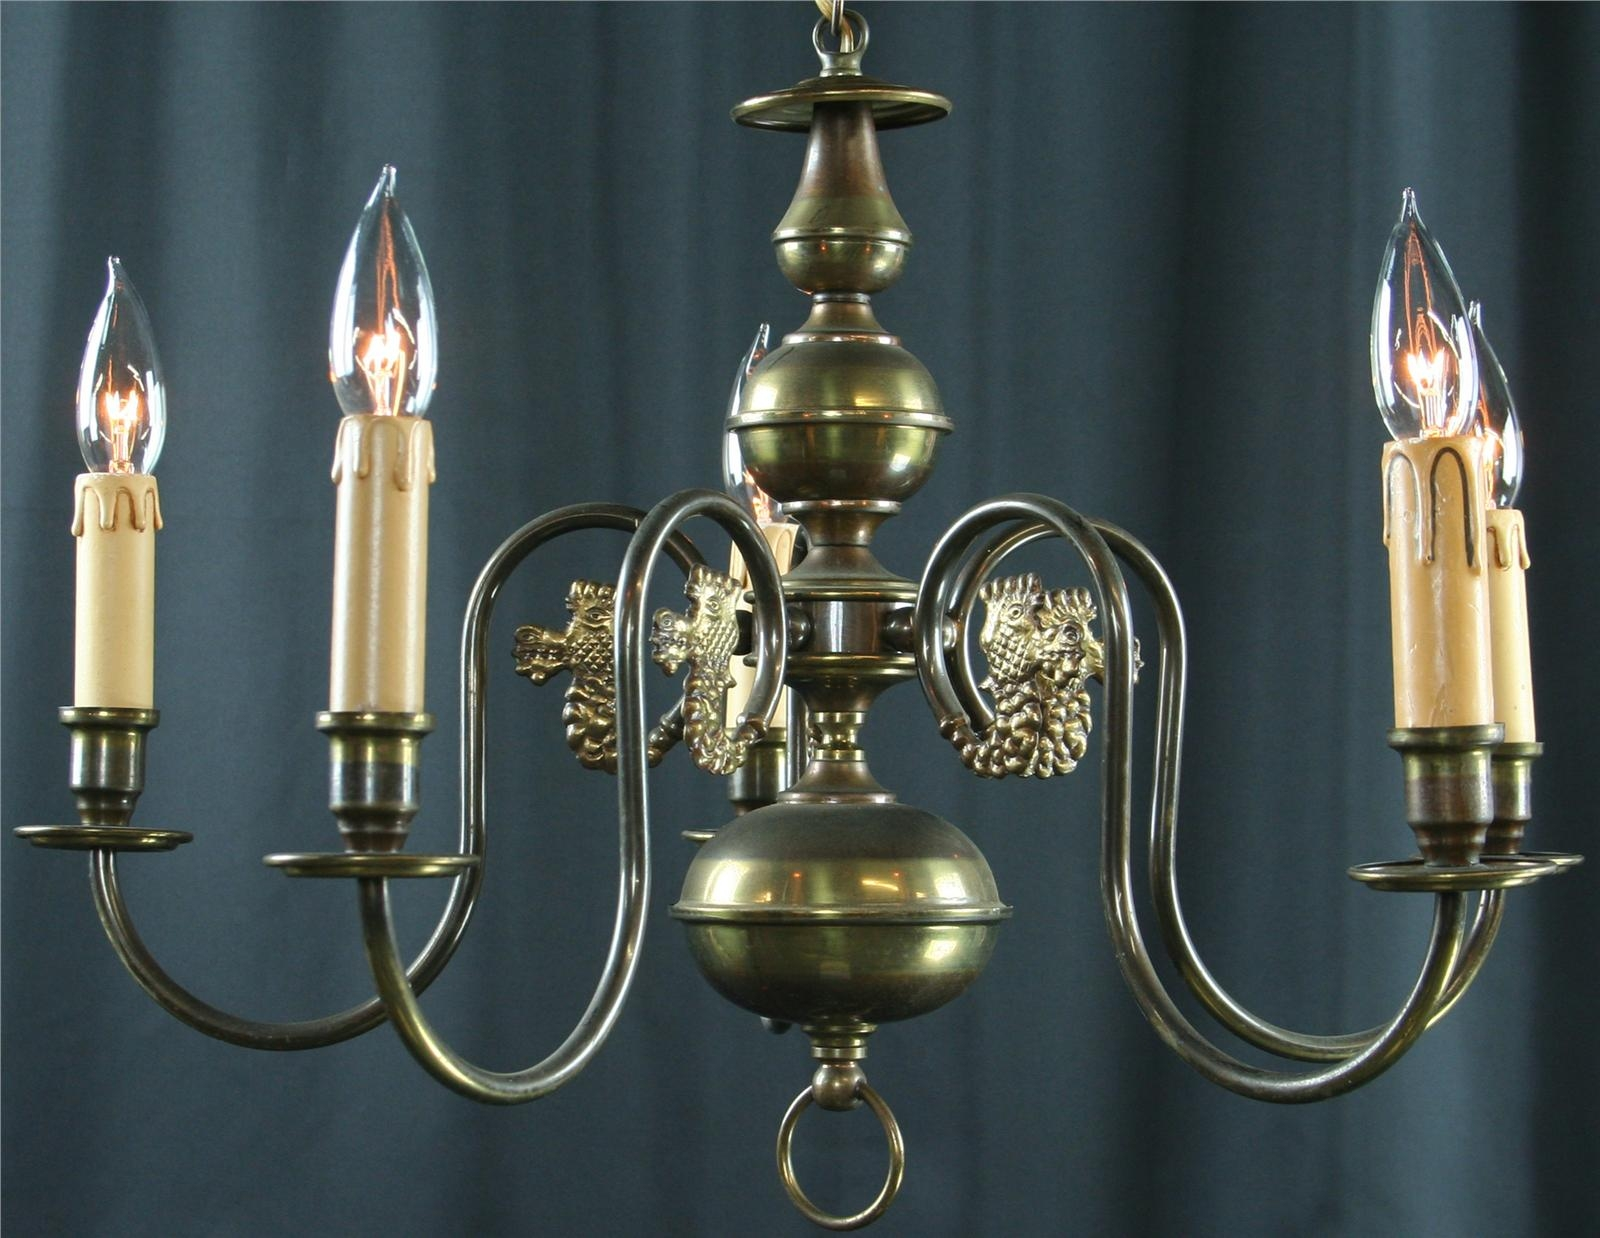 PETITE VINTAGE FLEMISH DRAGON CHANDELIER 5 ARMS METAL